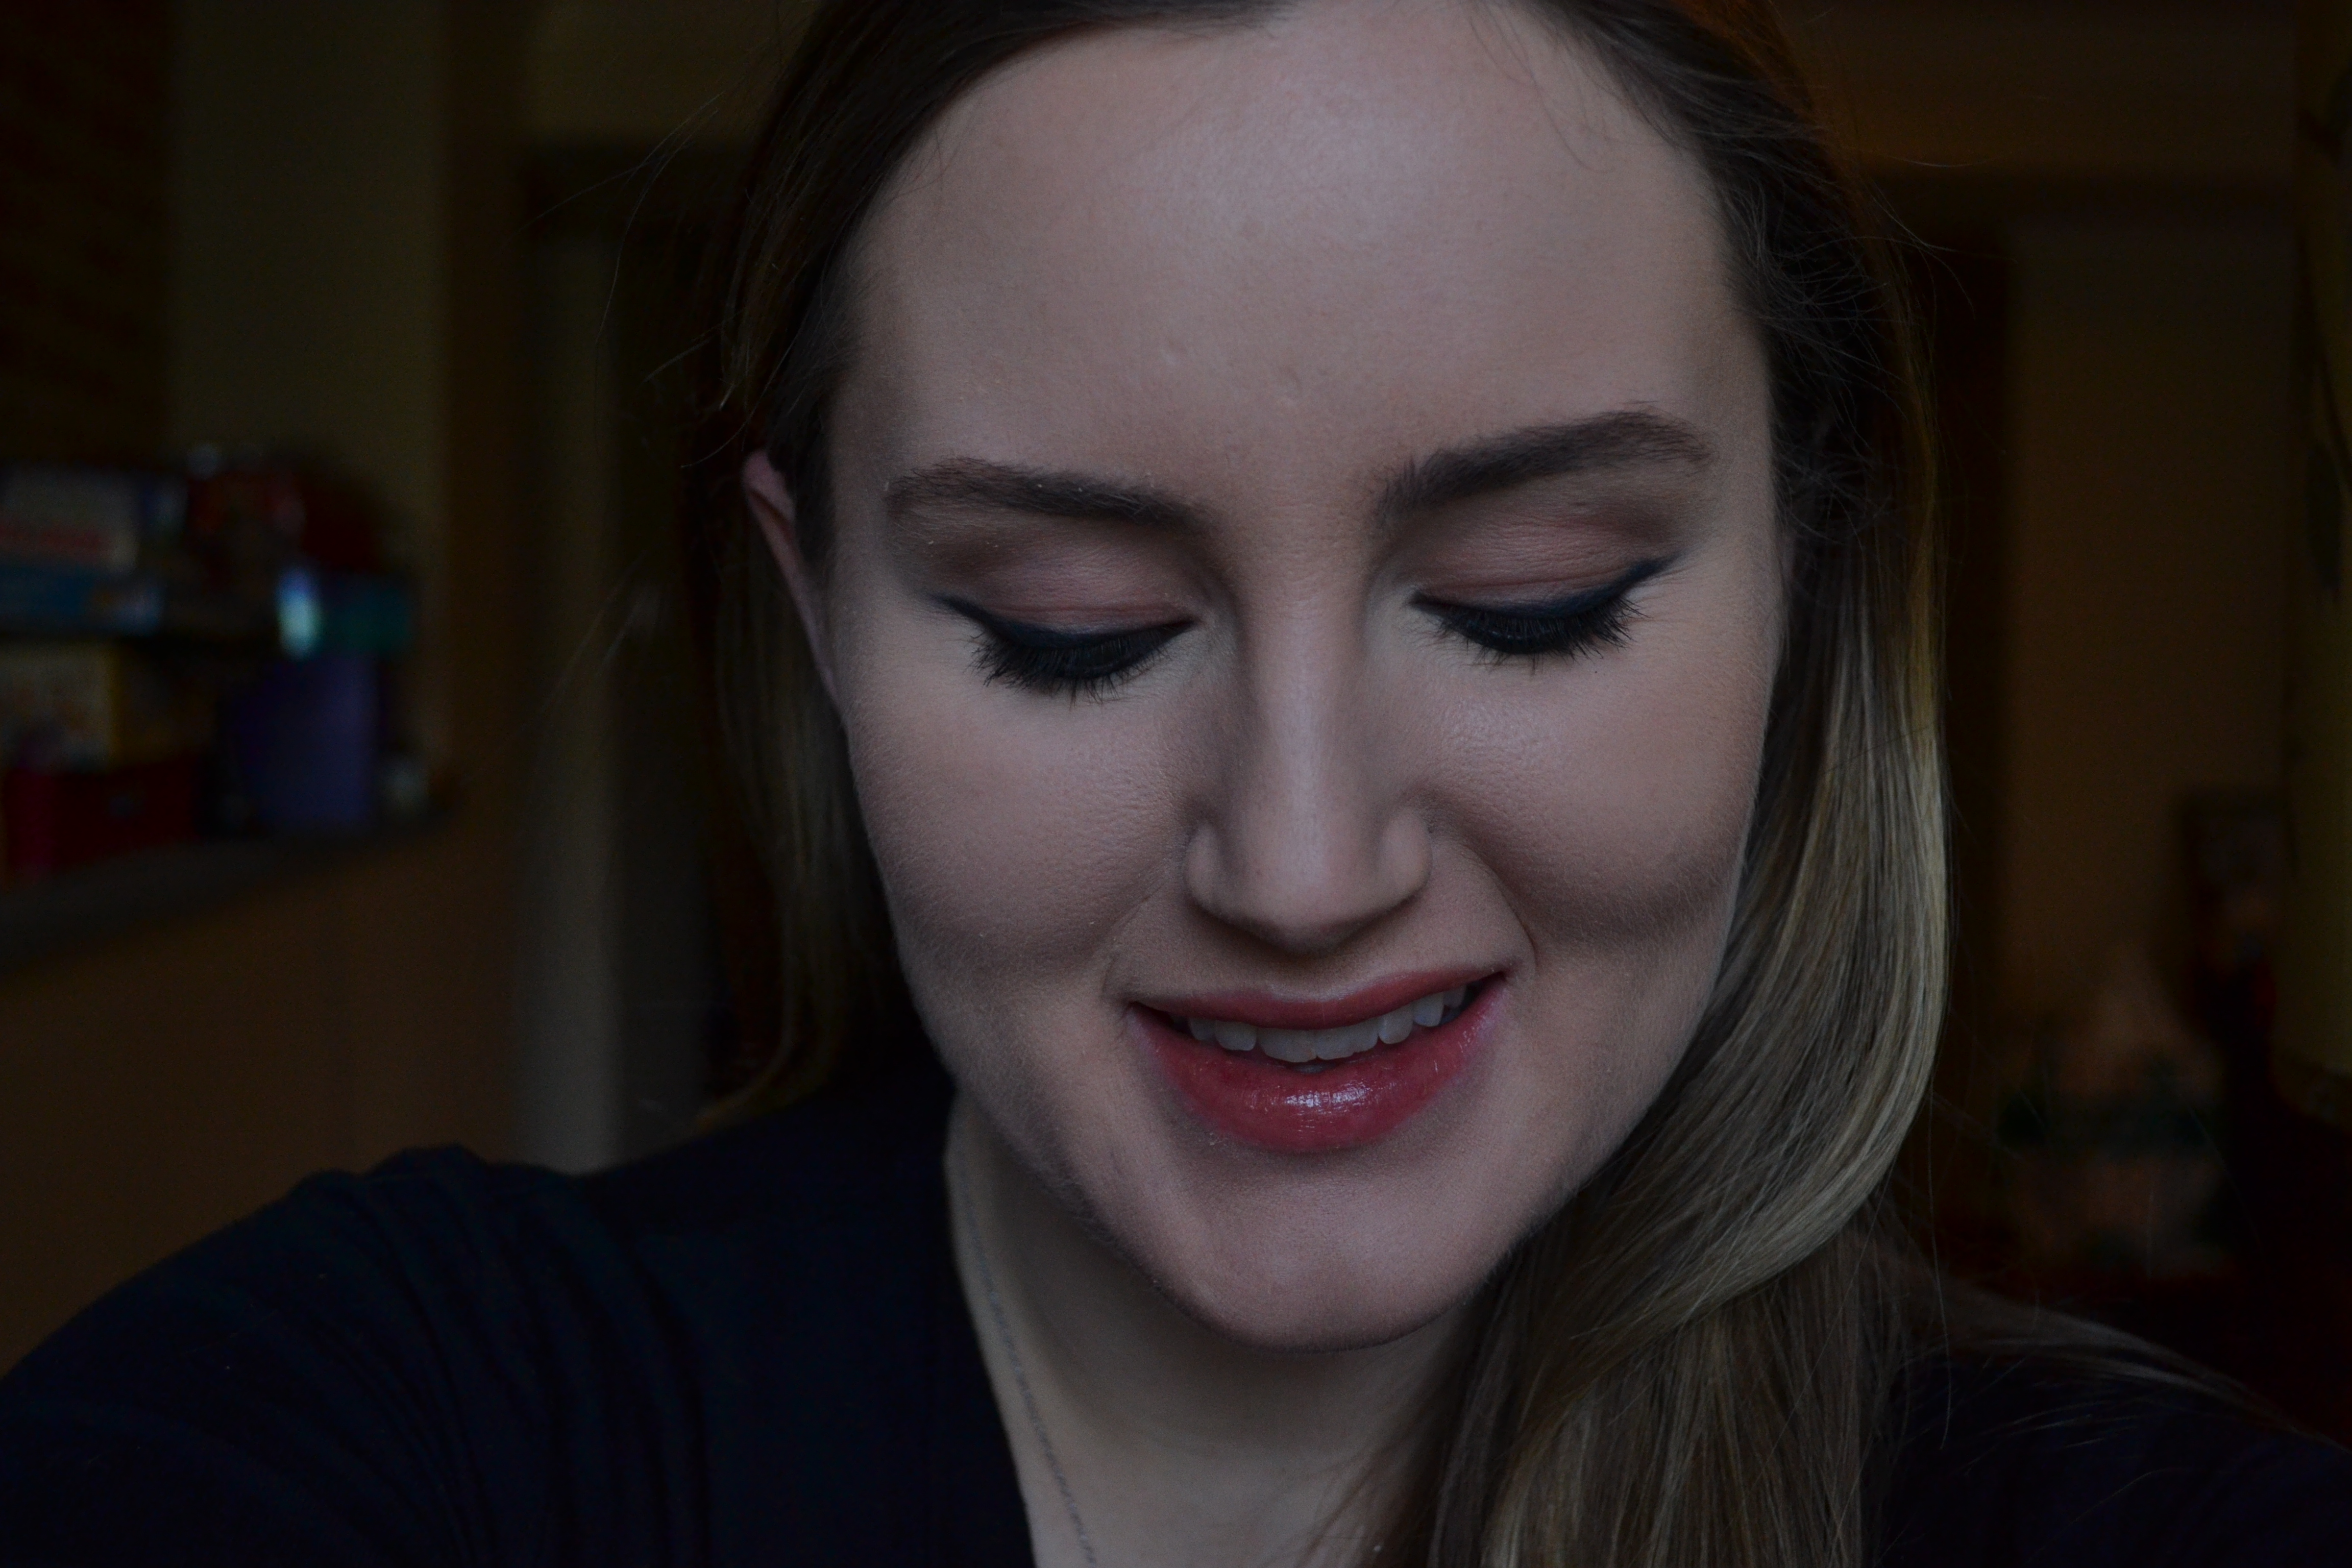 Beauty on a Budget: Natural Makeup & Heavy Eye Liner